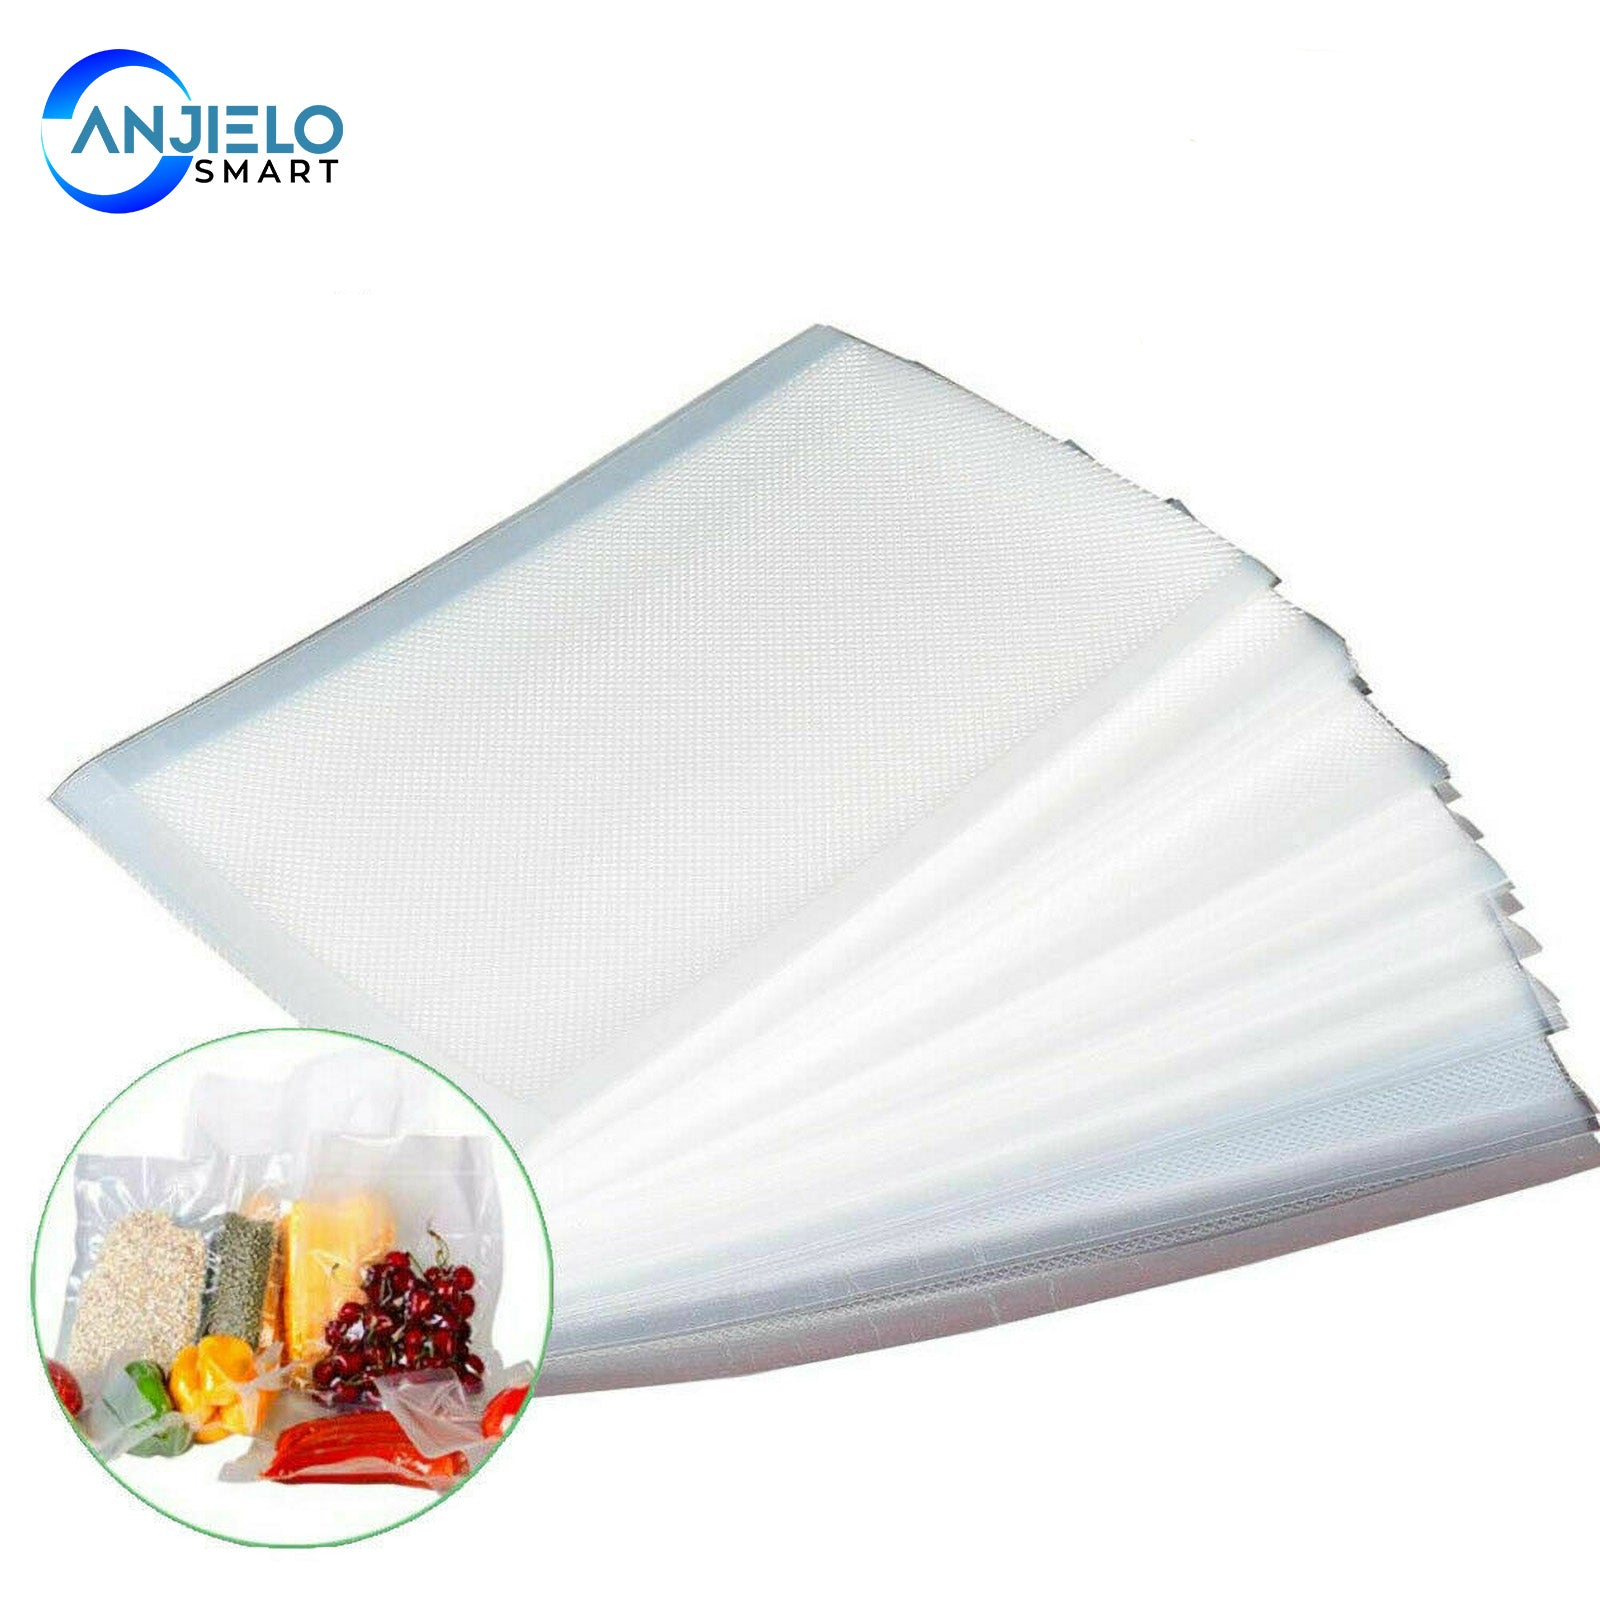 AnjieloSmart Vacuum Sealer Bags for Food Saver 100 Count Compression Storage Bags